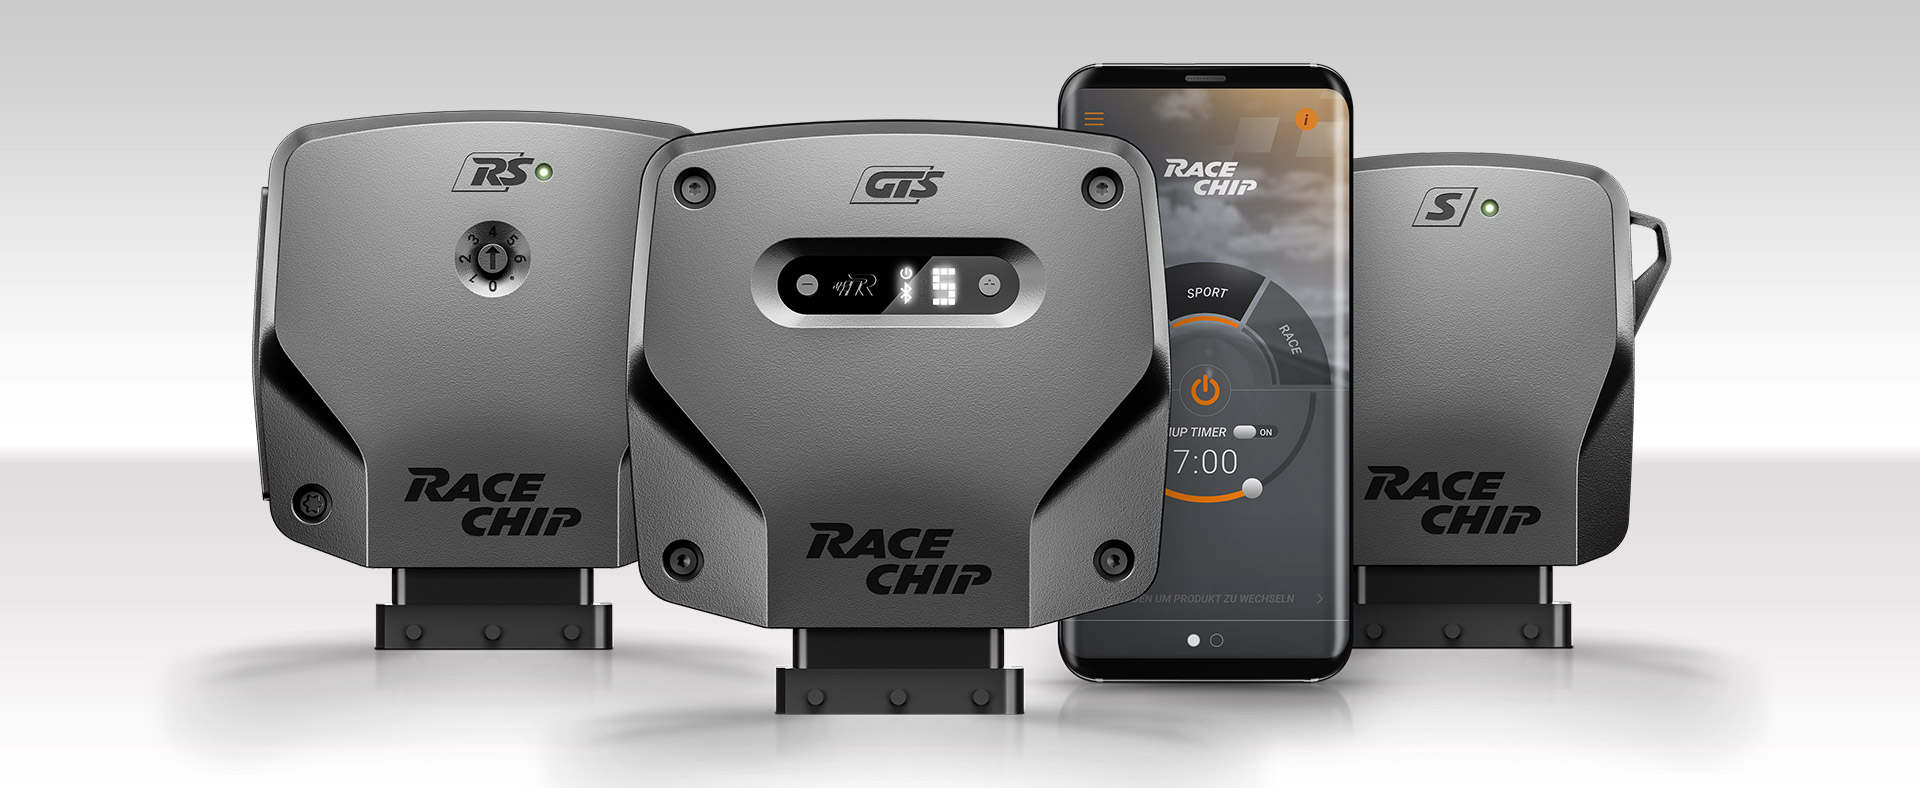 RaceChip unleashes true potential of the Kia Stinger GT